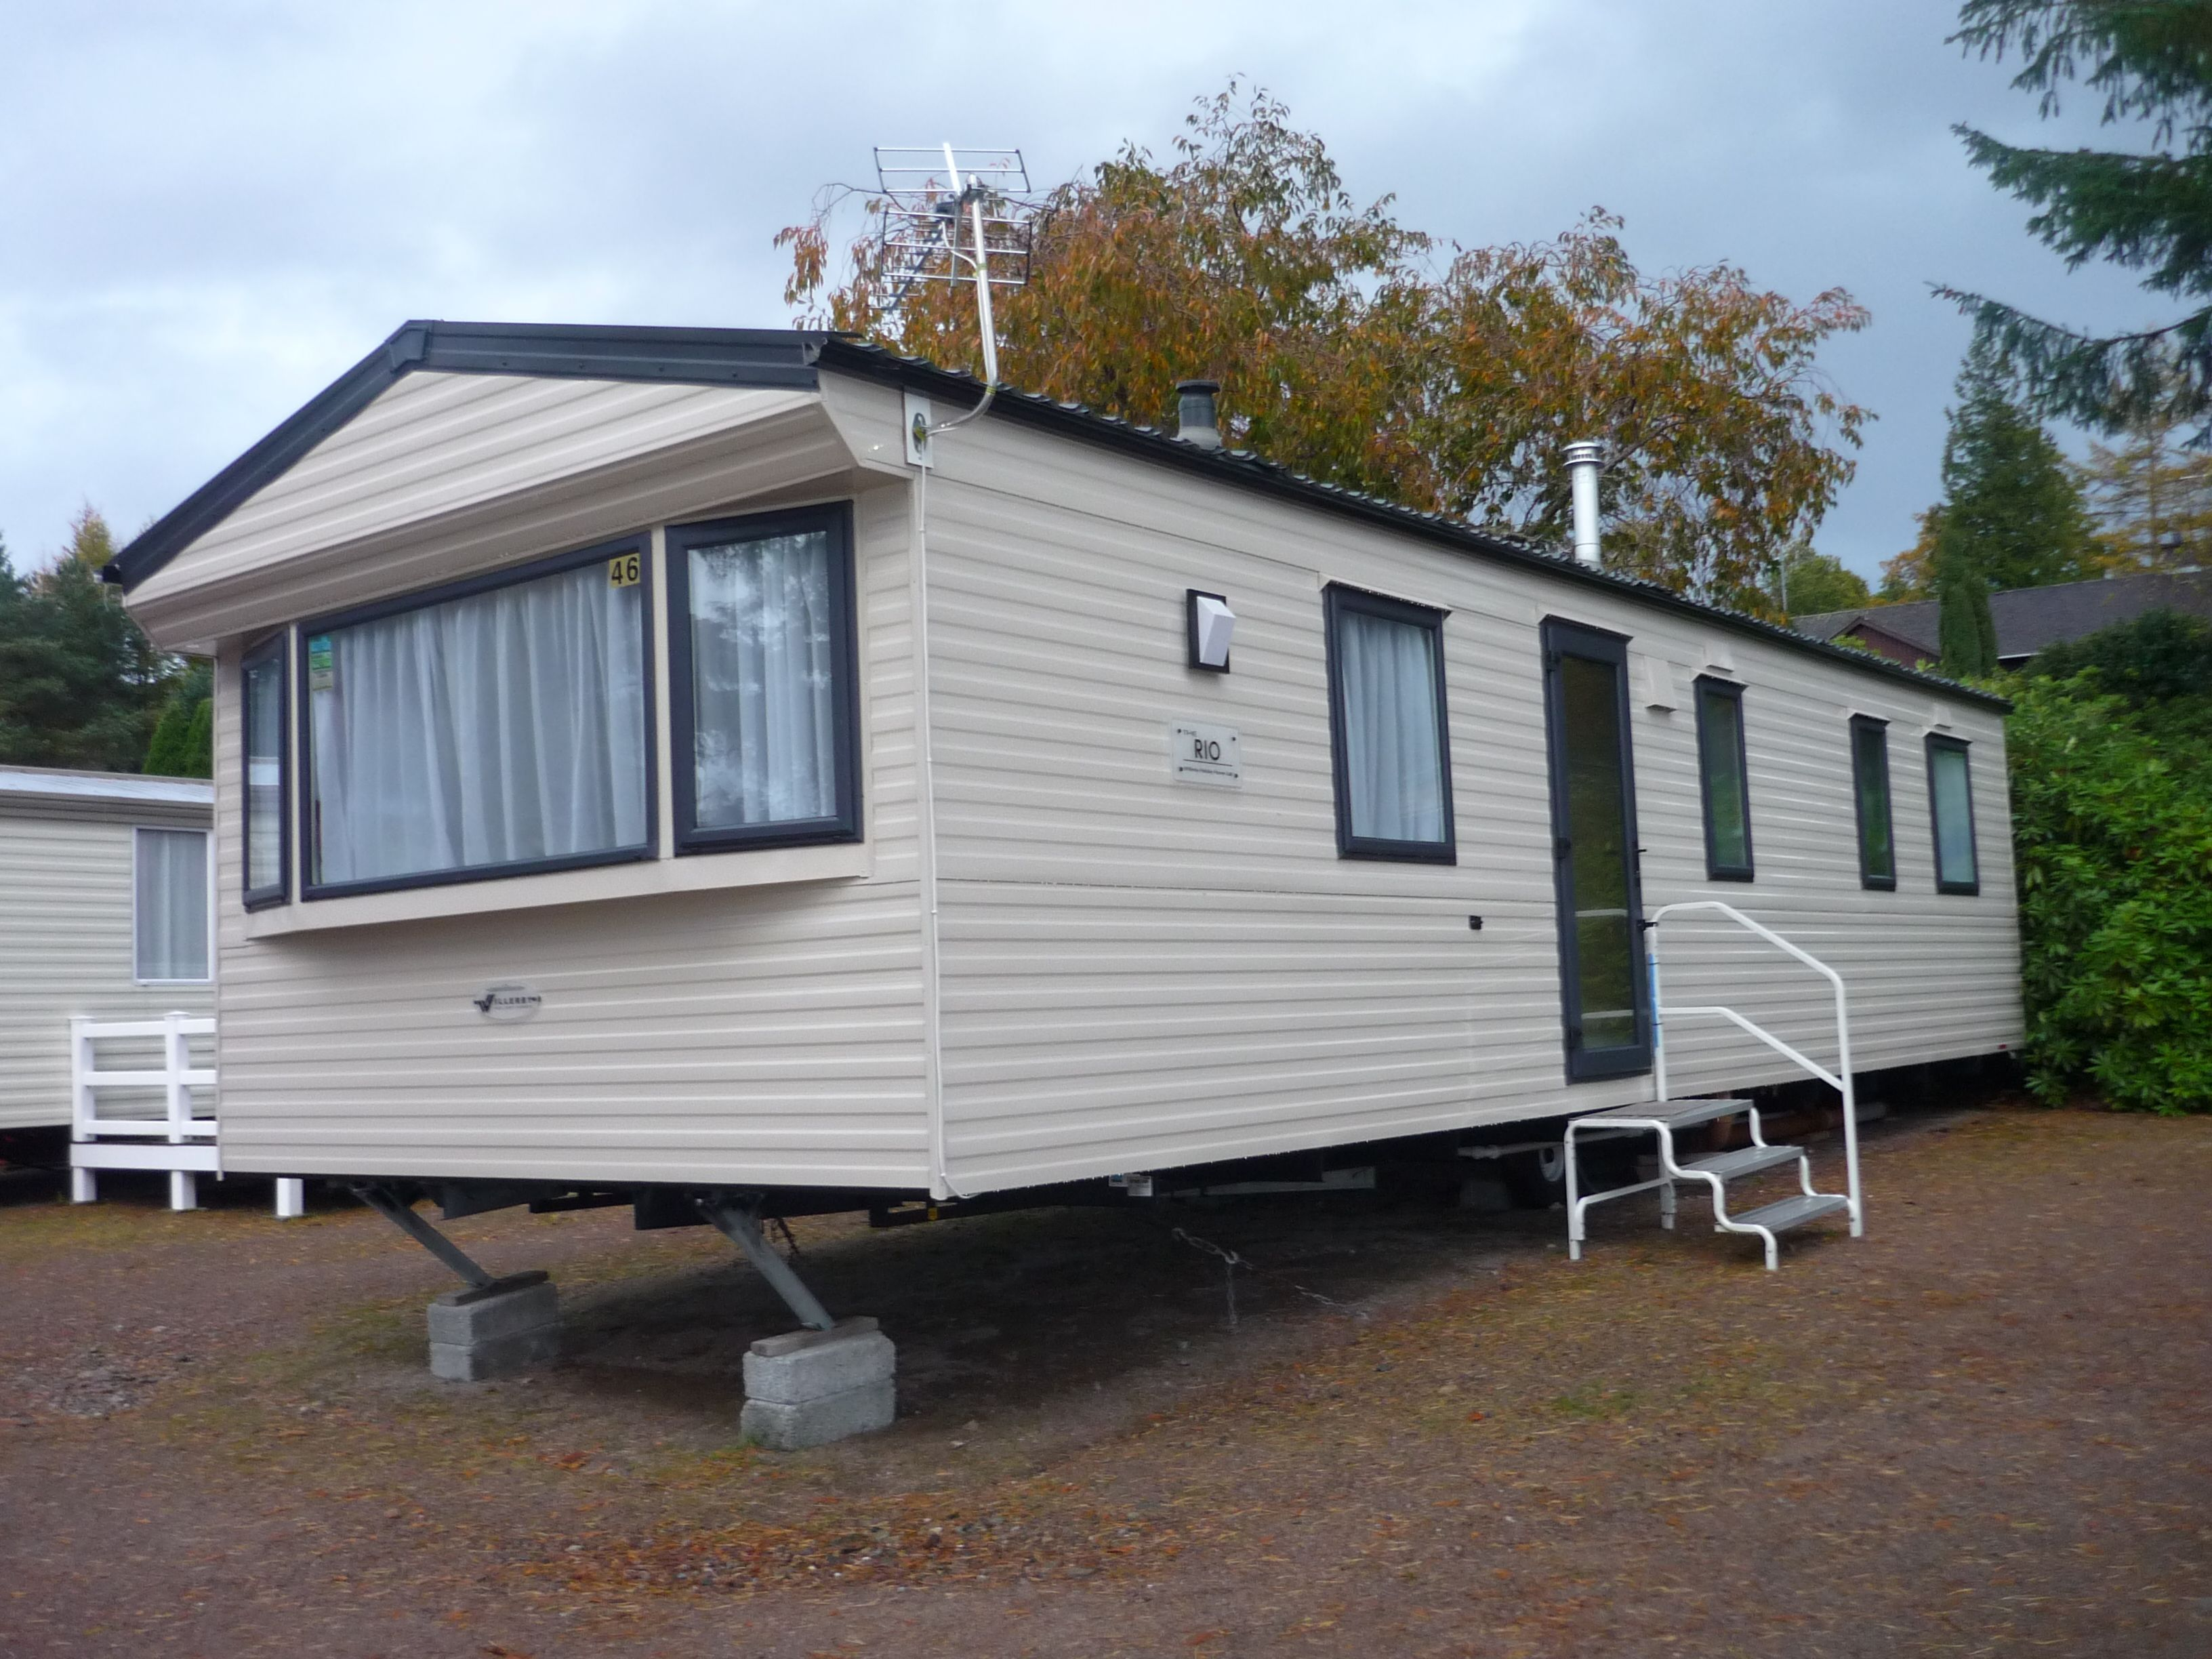 Explore Used Mobile Homes, Mobile Homes For Sale, And More!